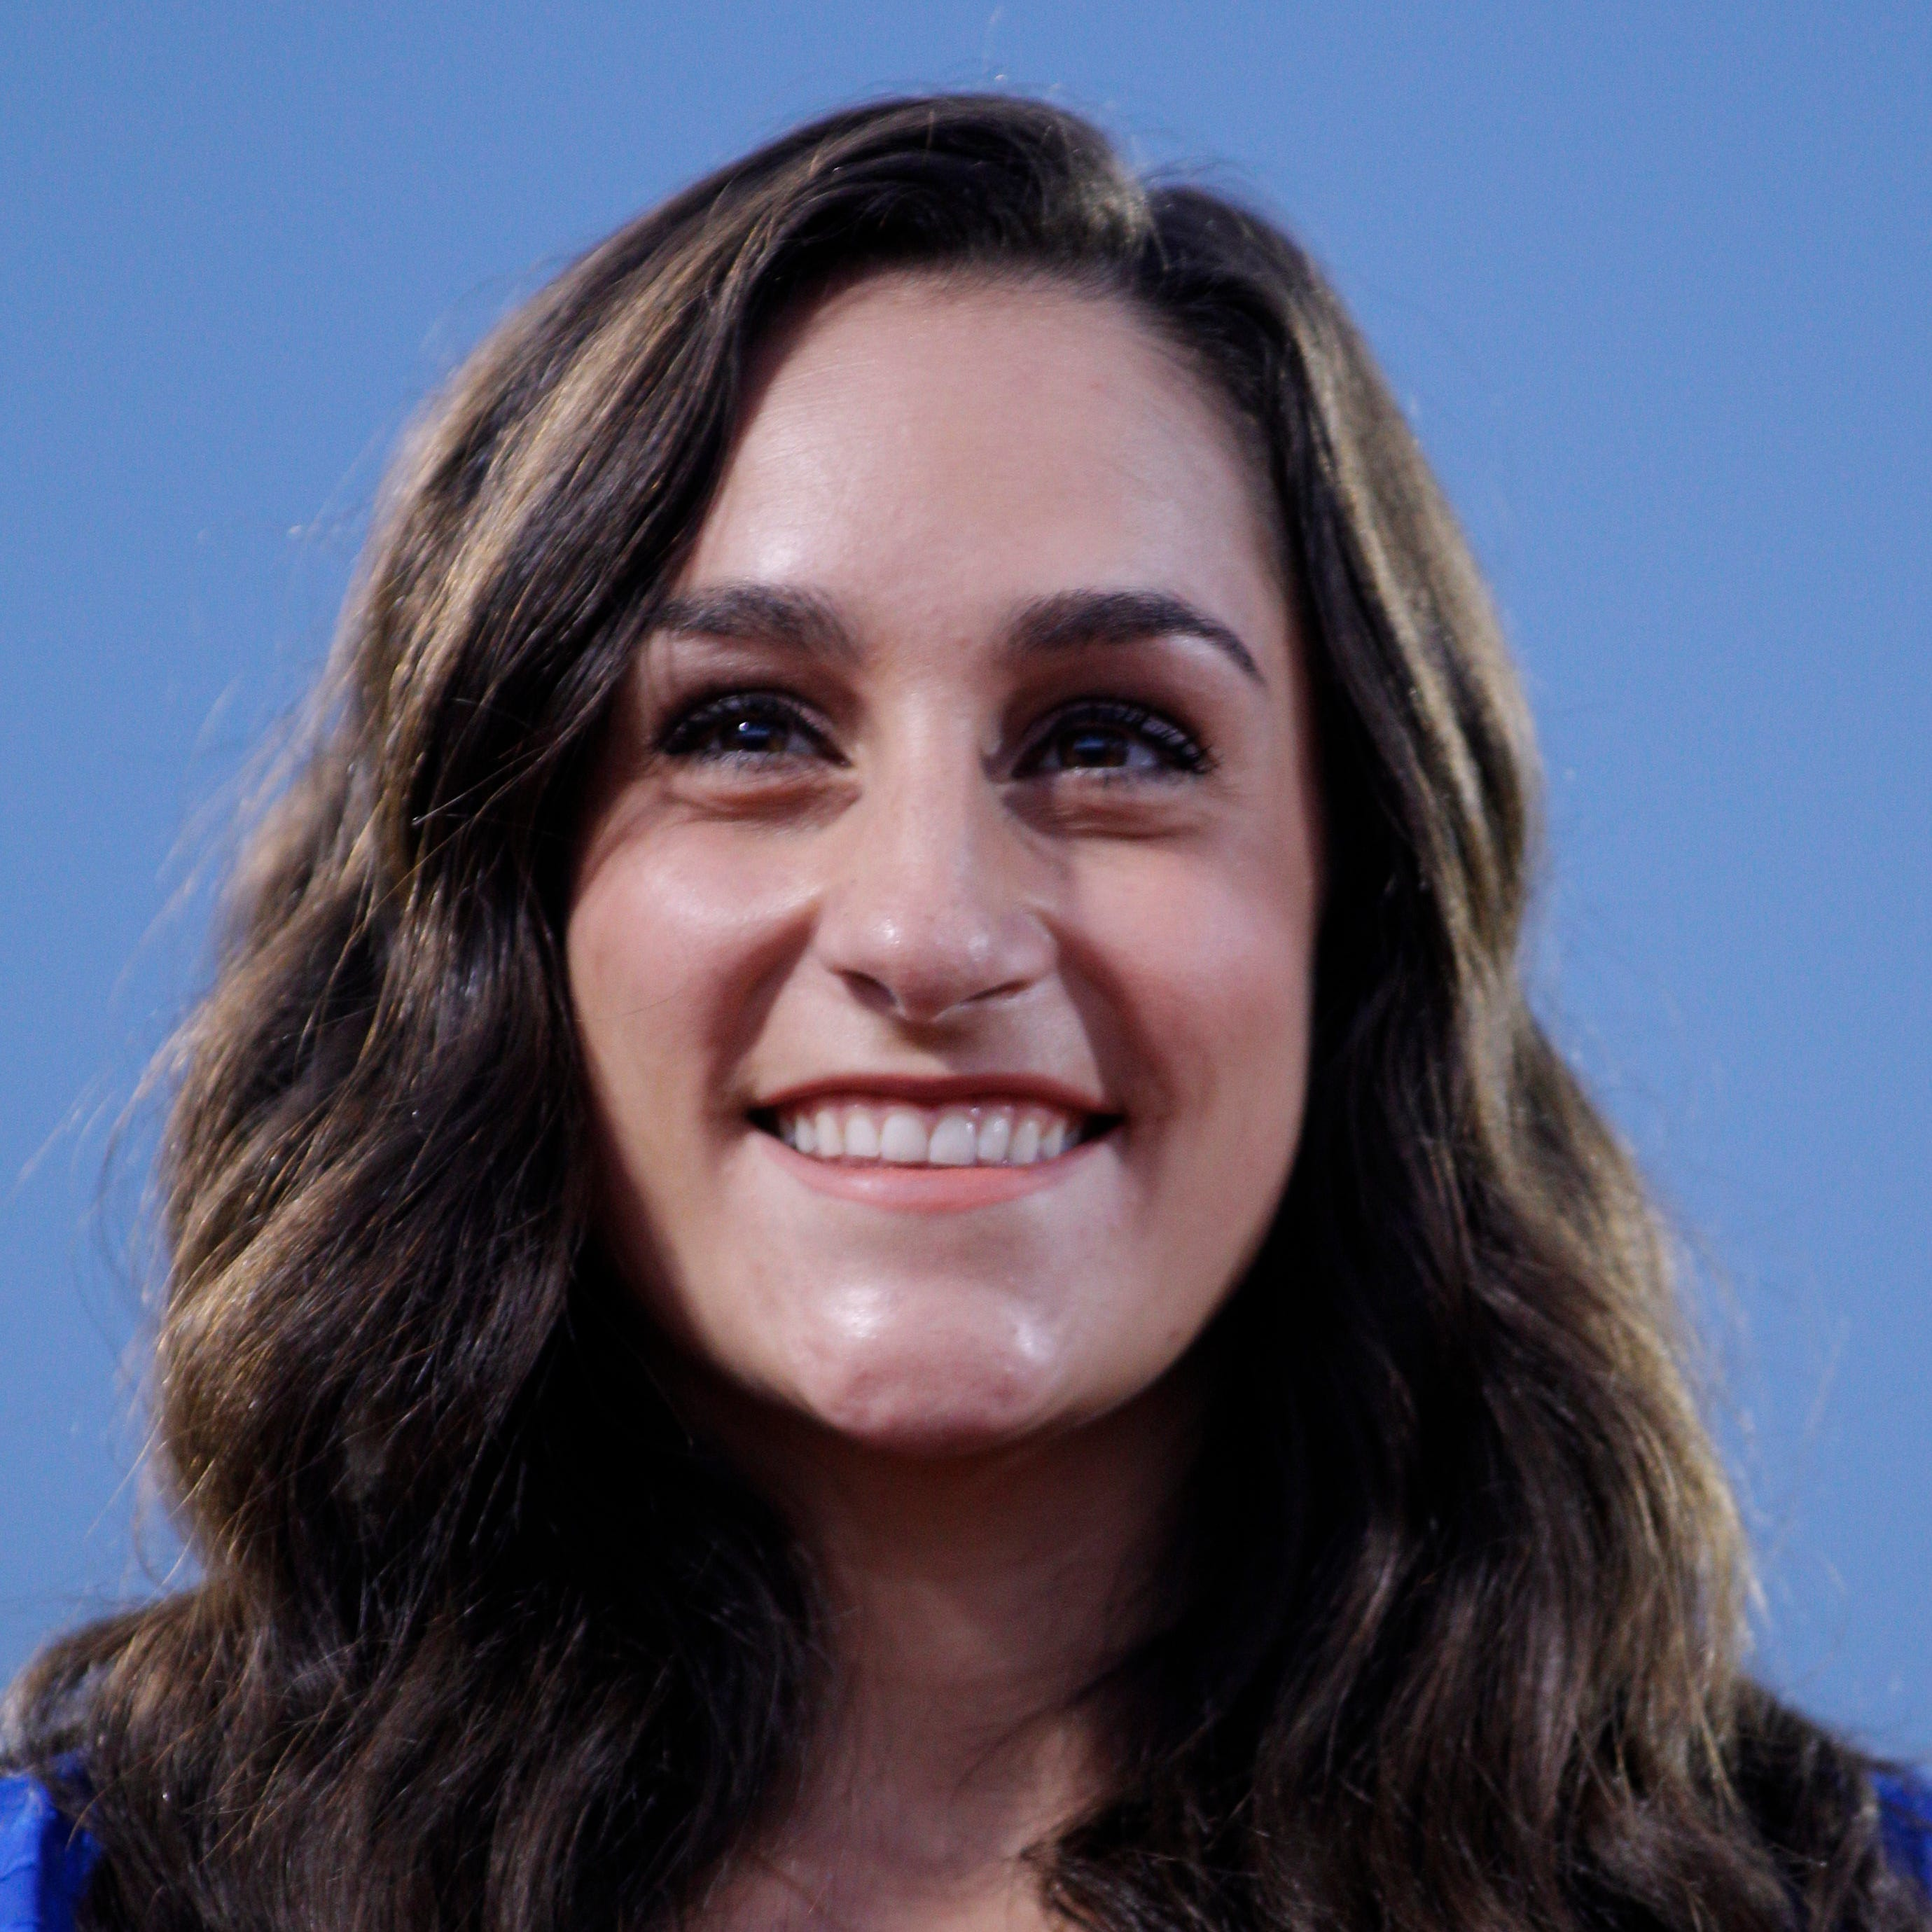 Olympic gold medalist, DeWitt native Jordyn Wieber hired as gymnastics coach at Arkansas